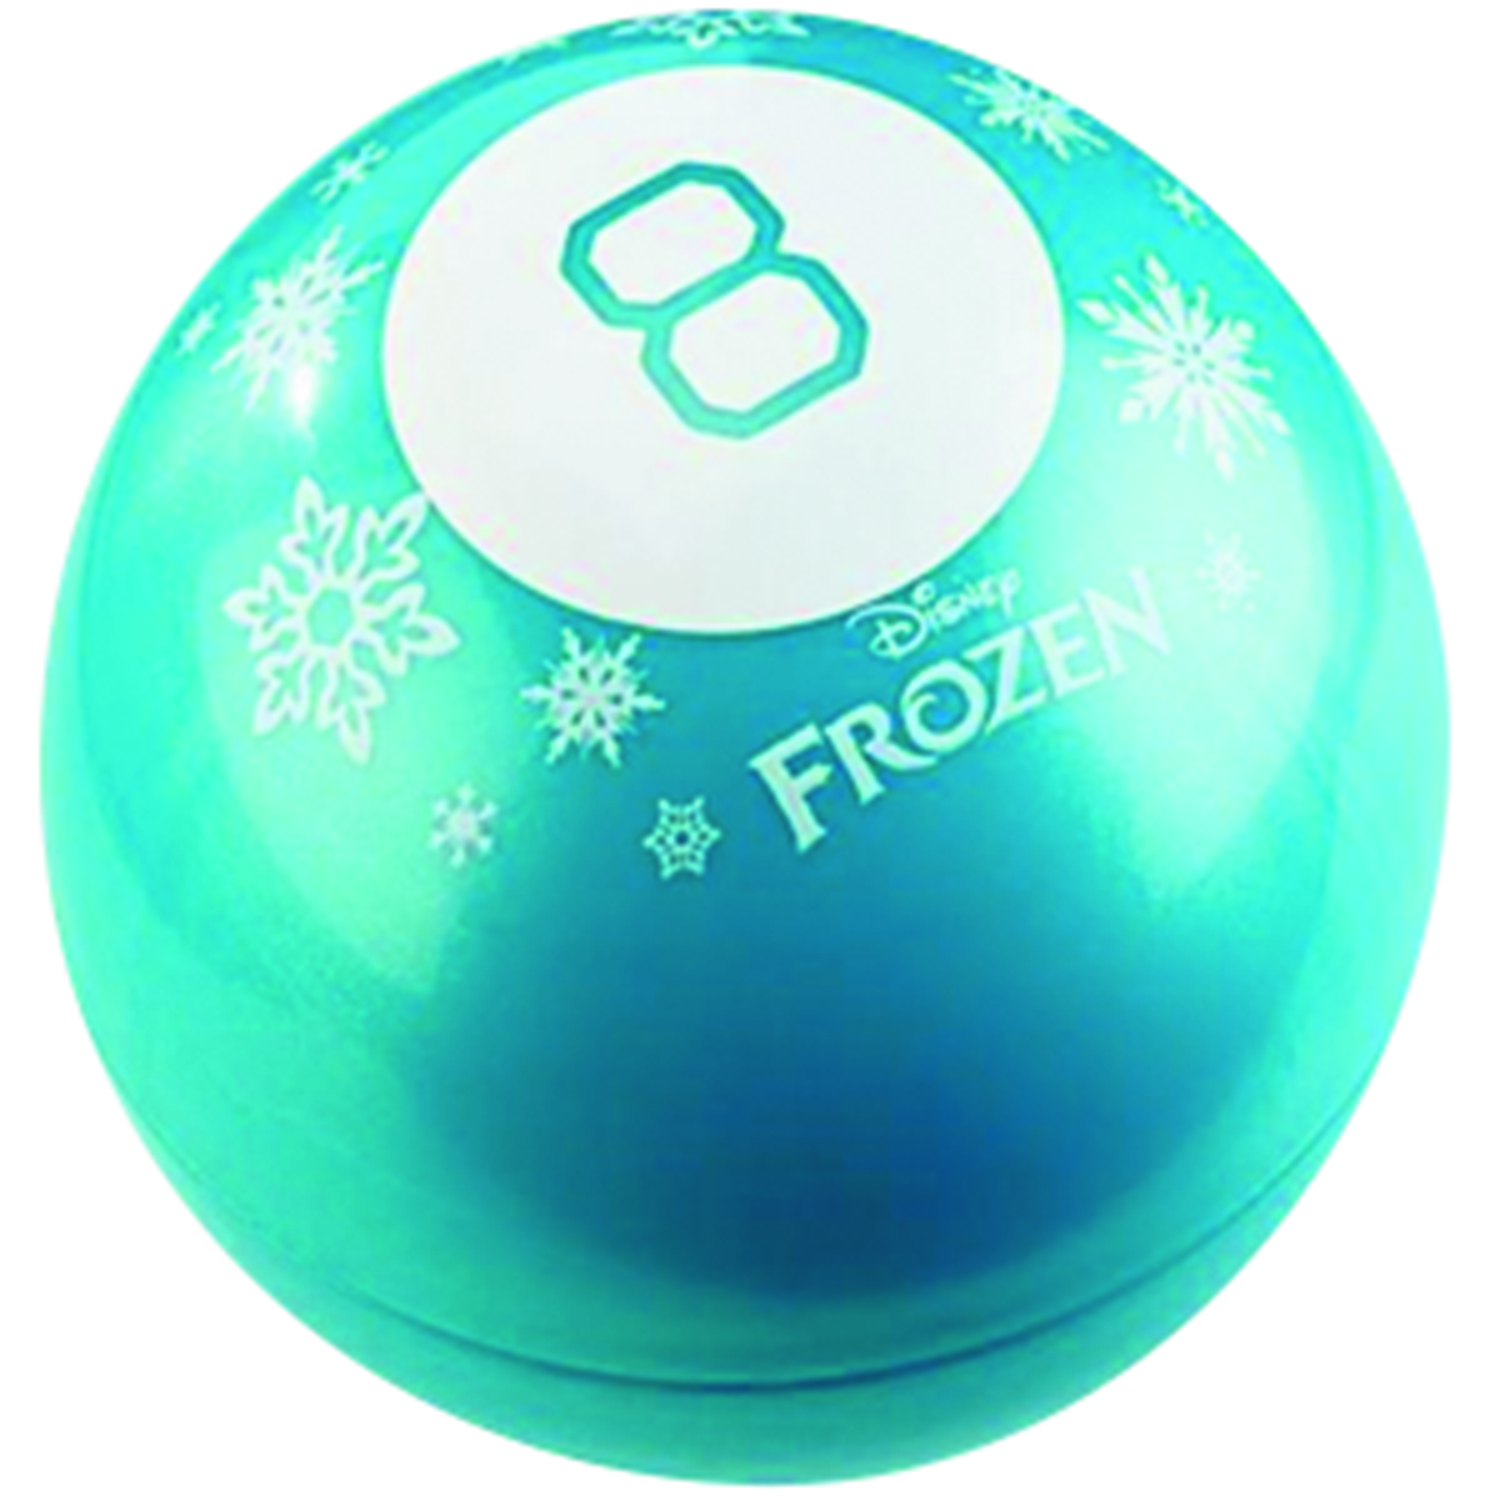 DISNEY FROZEN MAGIC 8-BALL